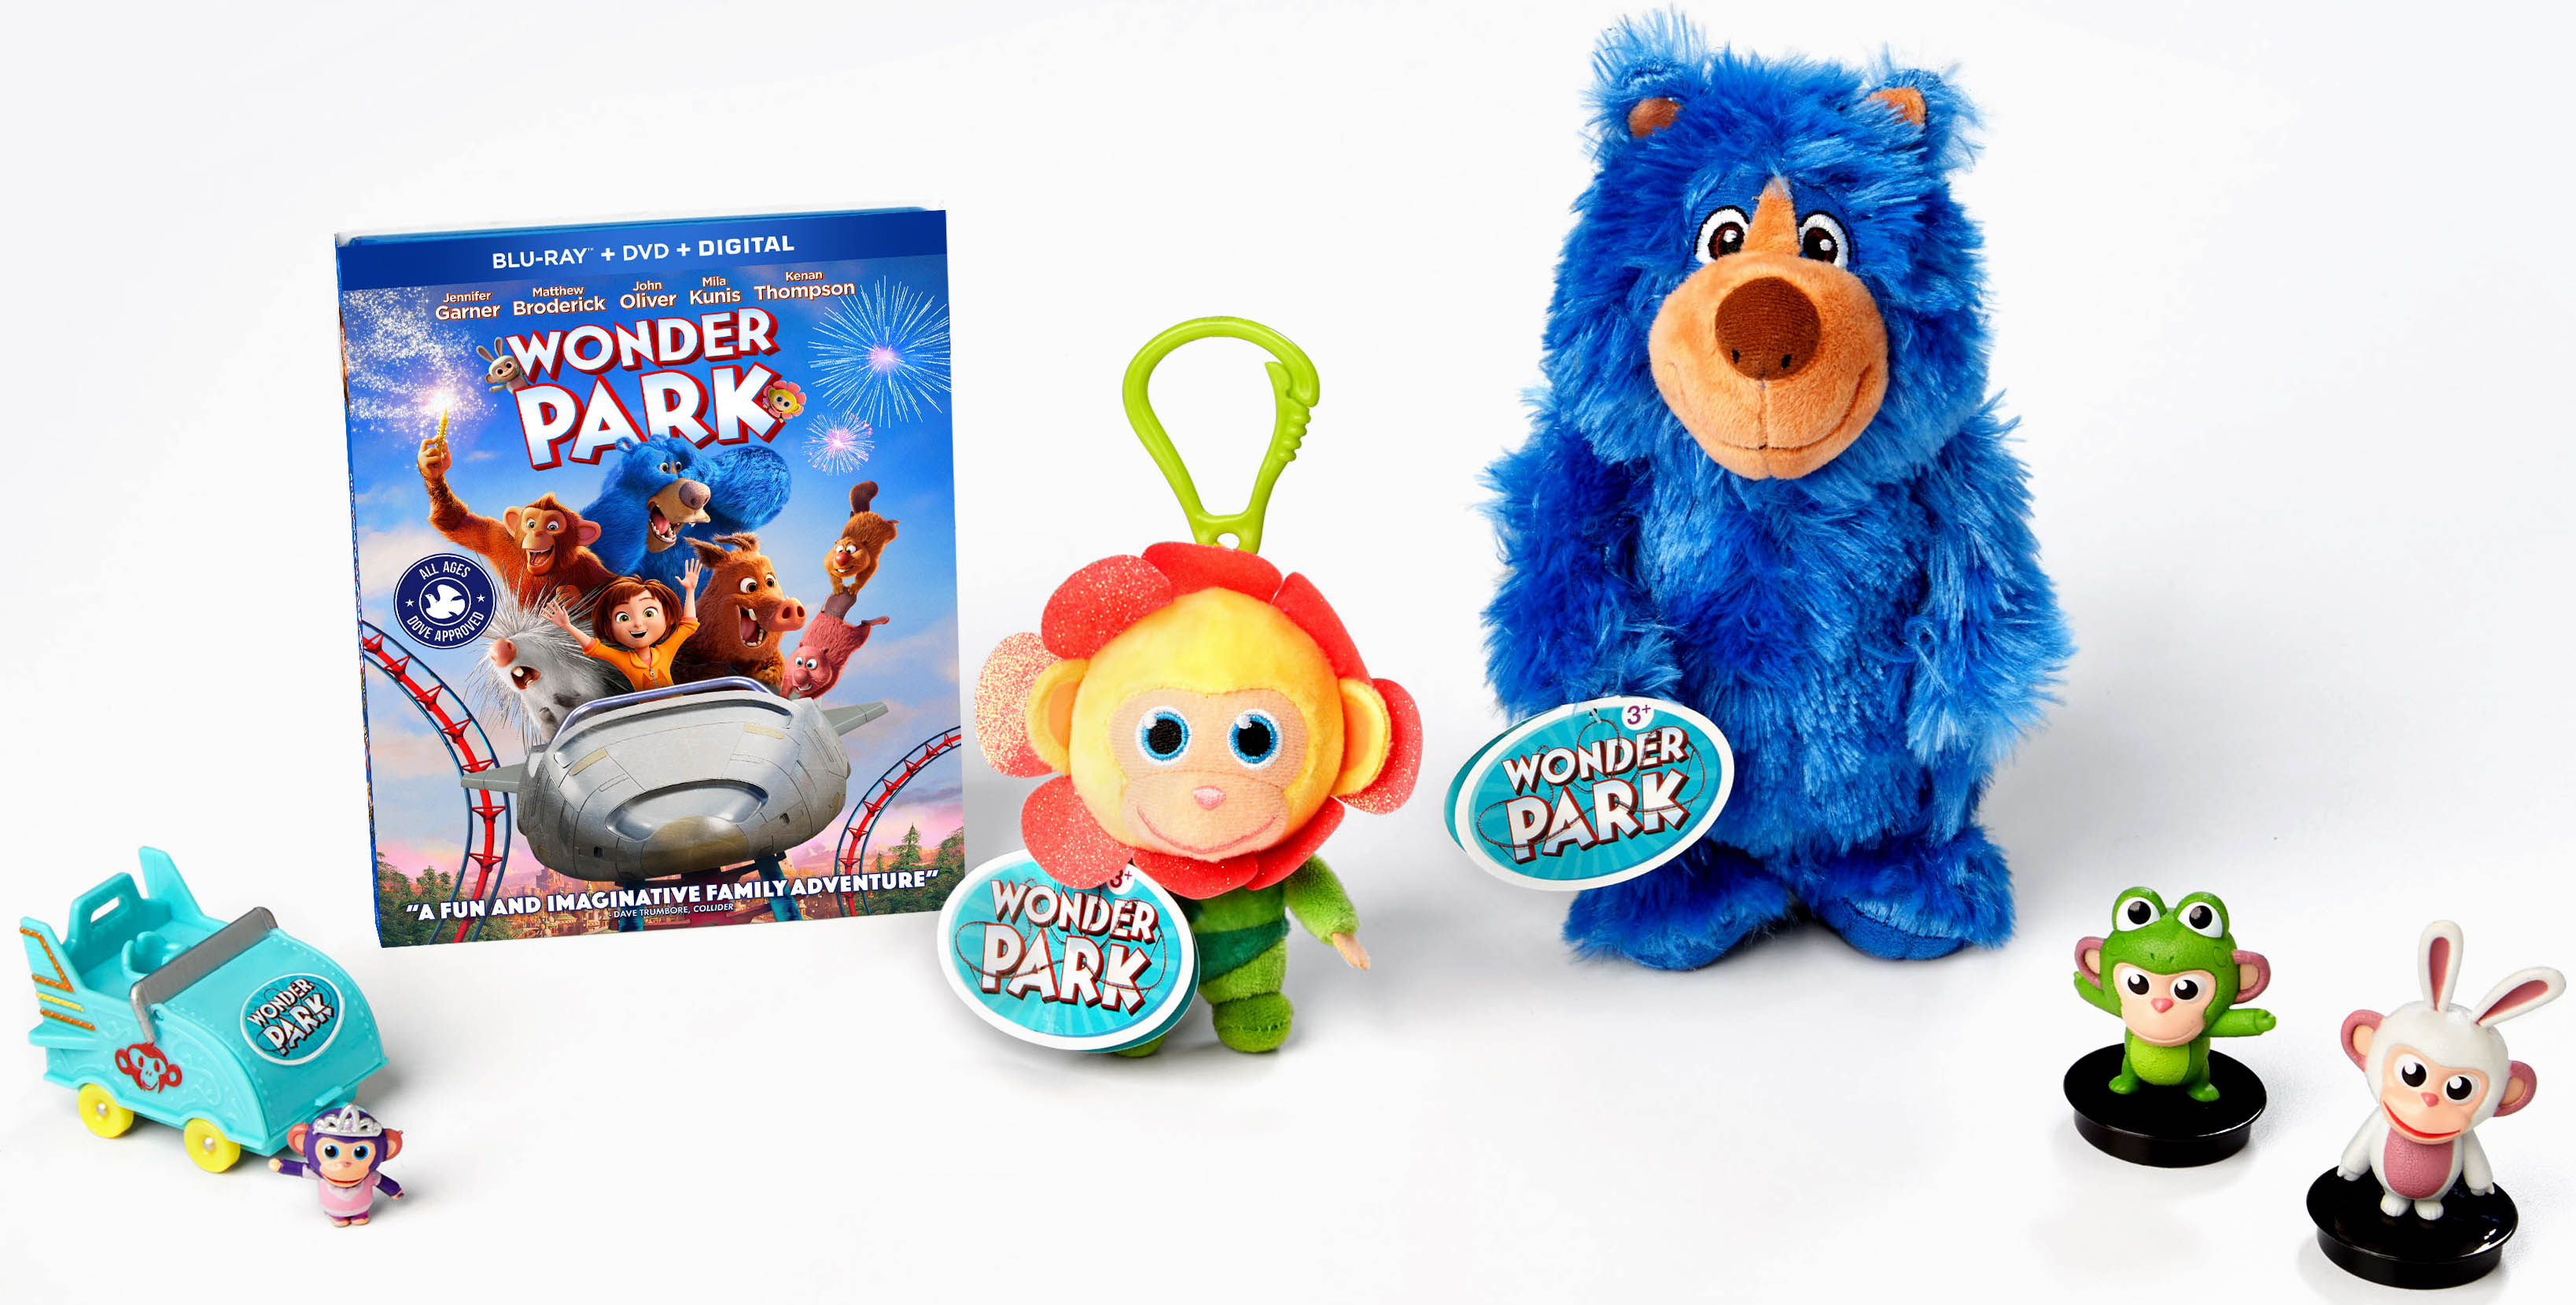 Wonder Park - Blu-ray Priza Package